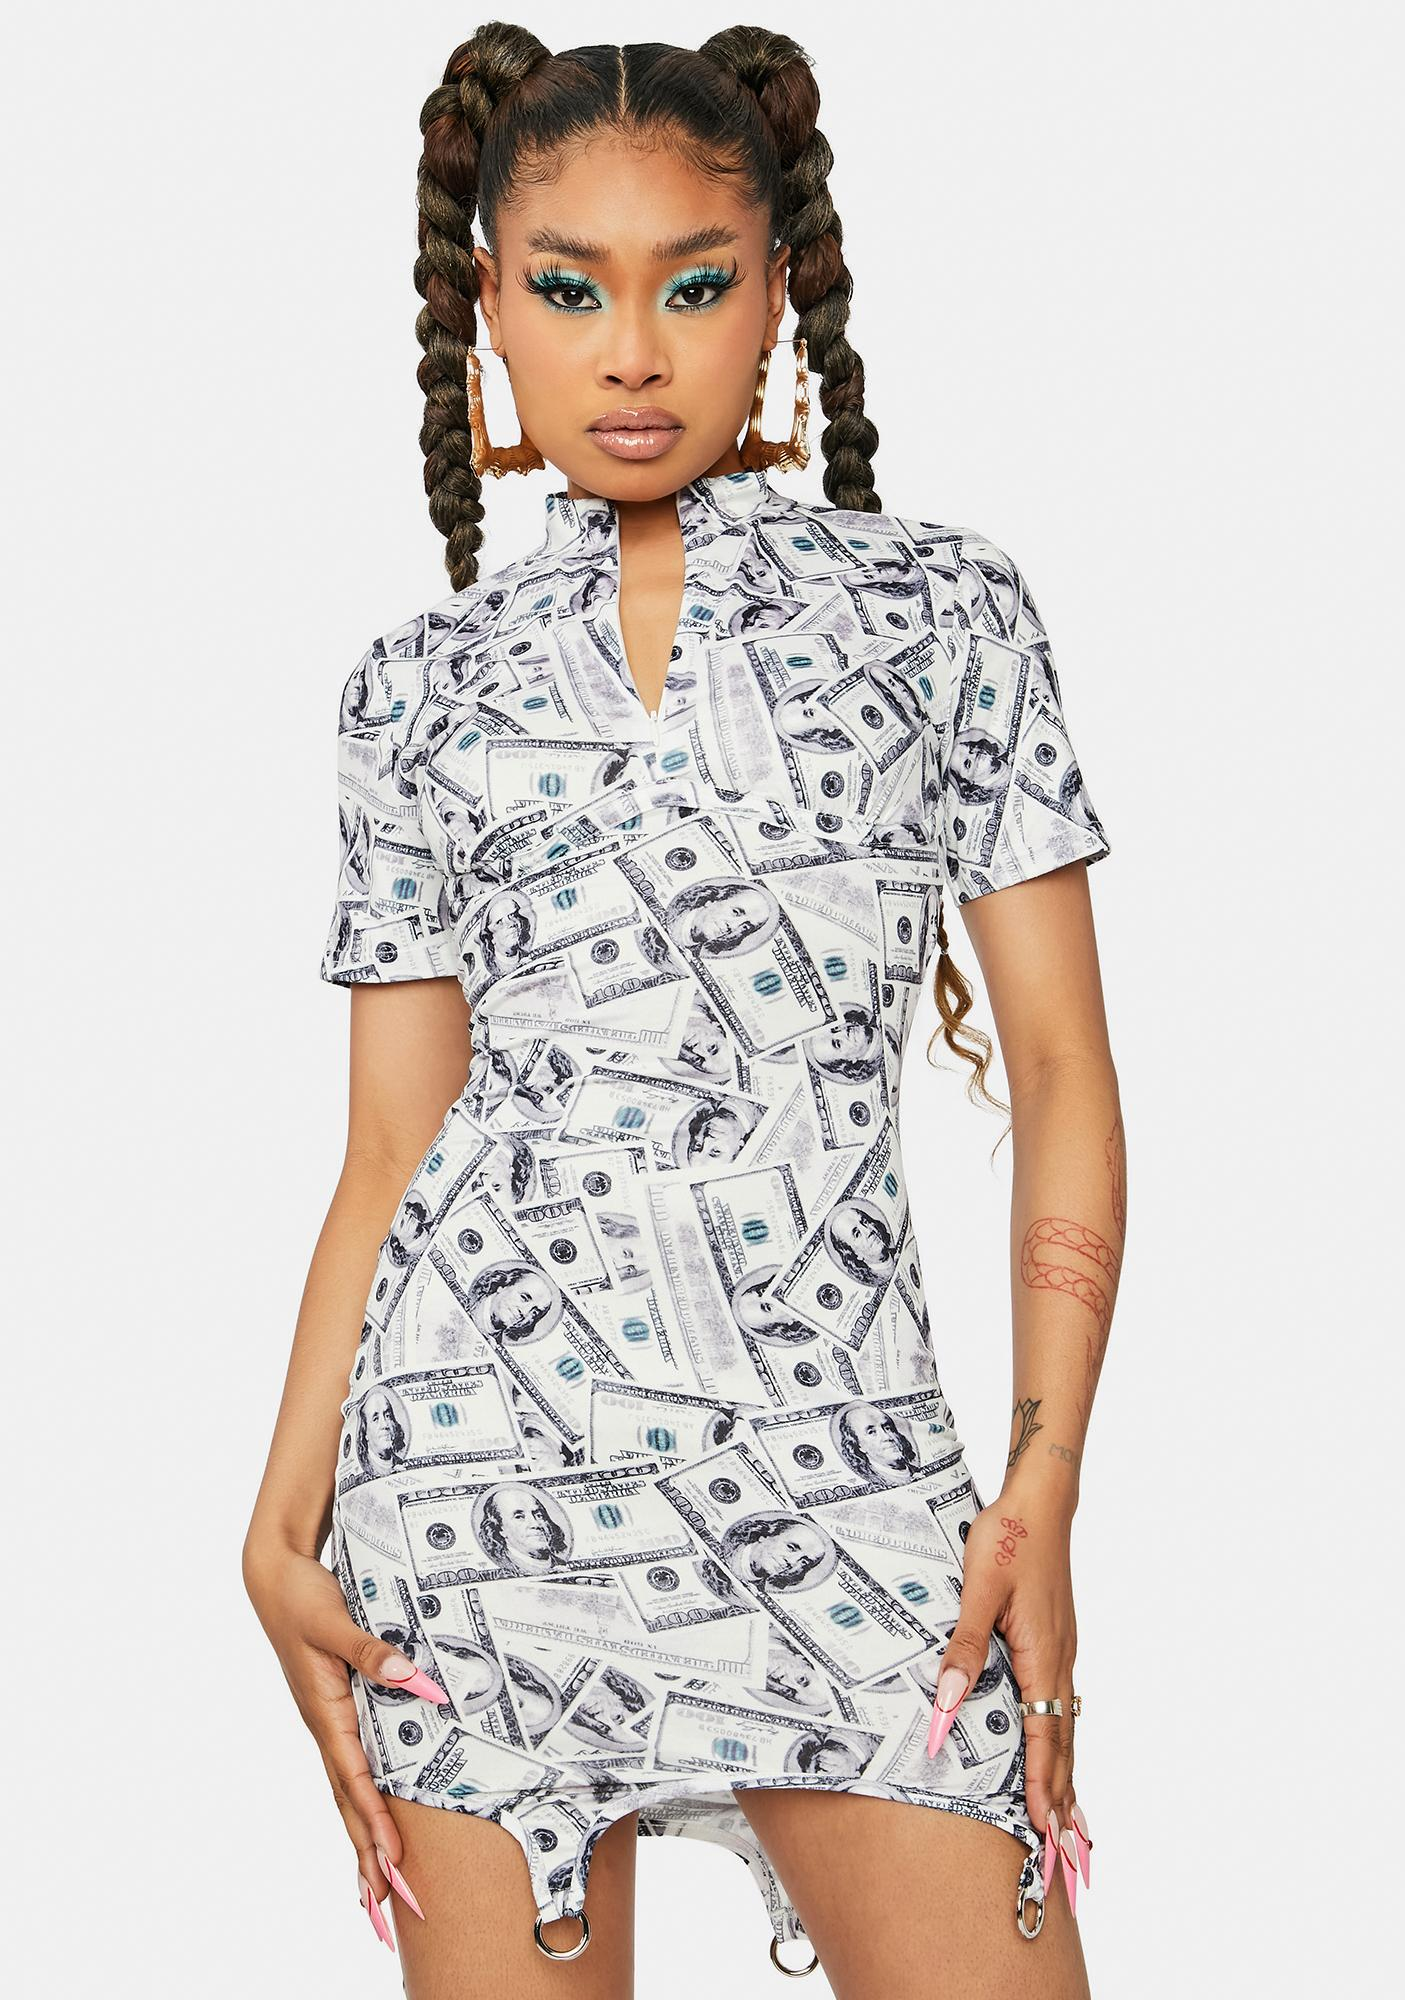 Big Spender Money Print Mini Dress